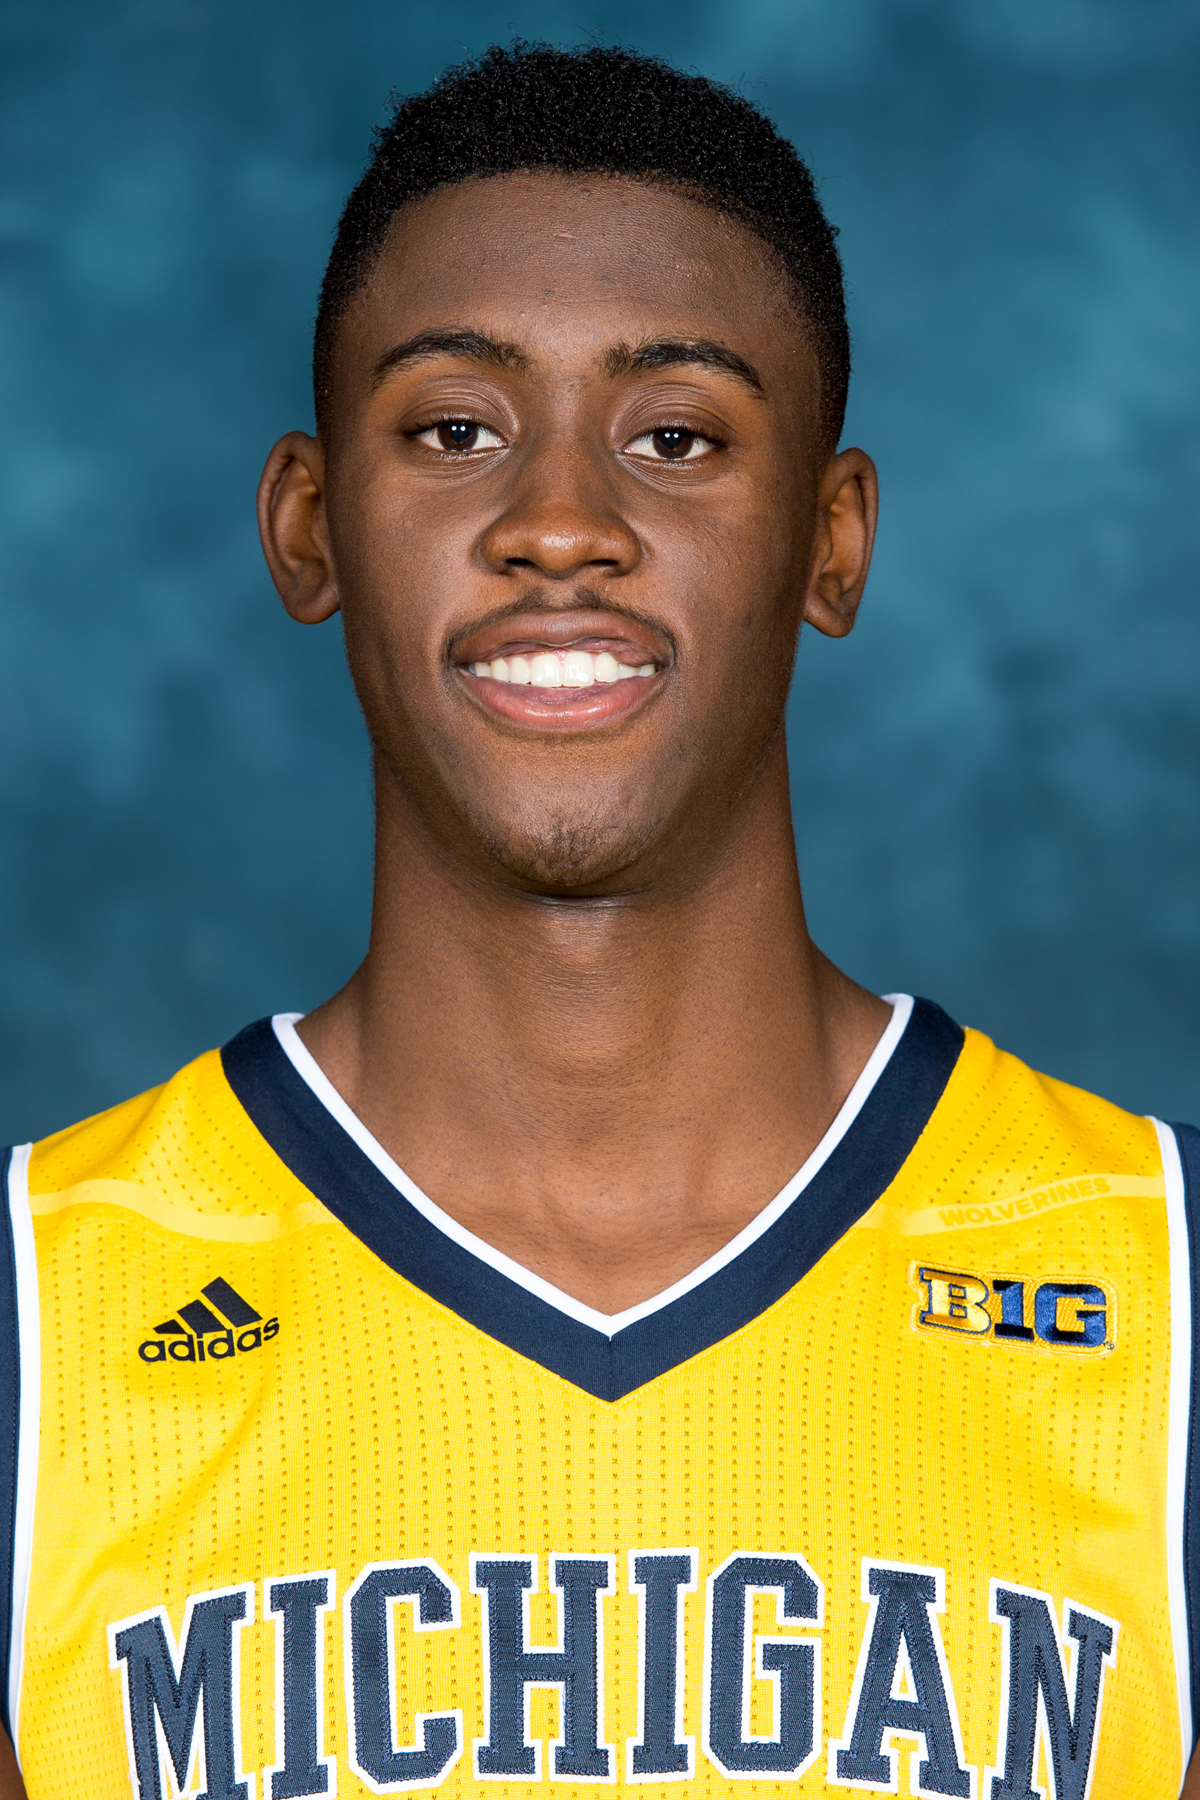 caris levert - photo #13